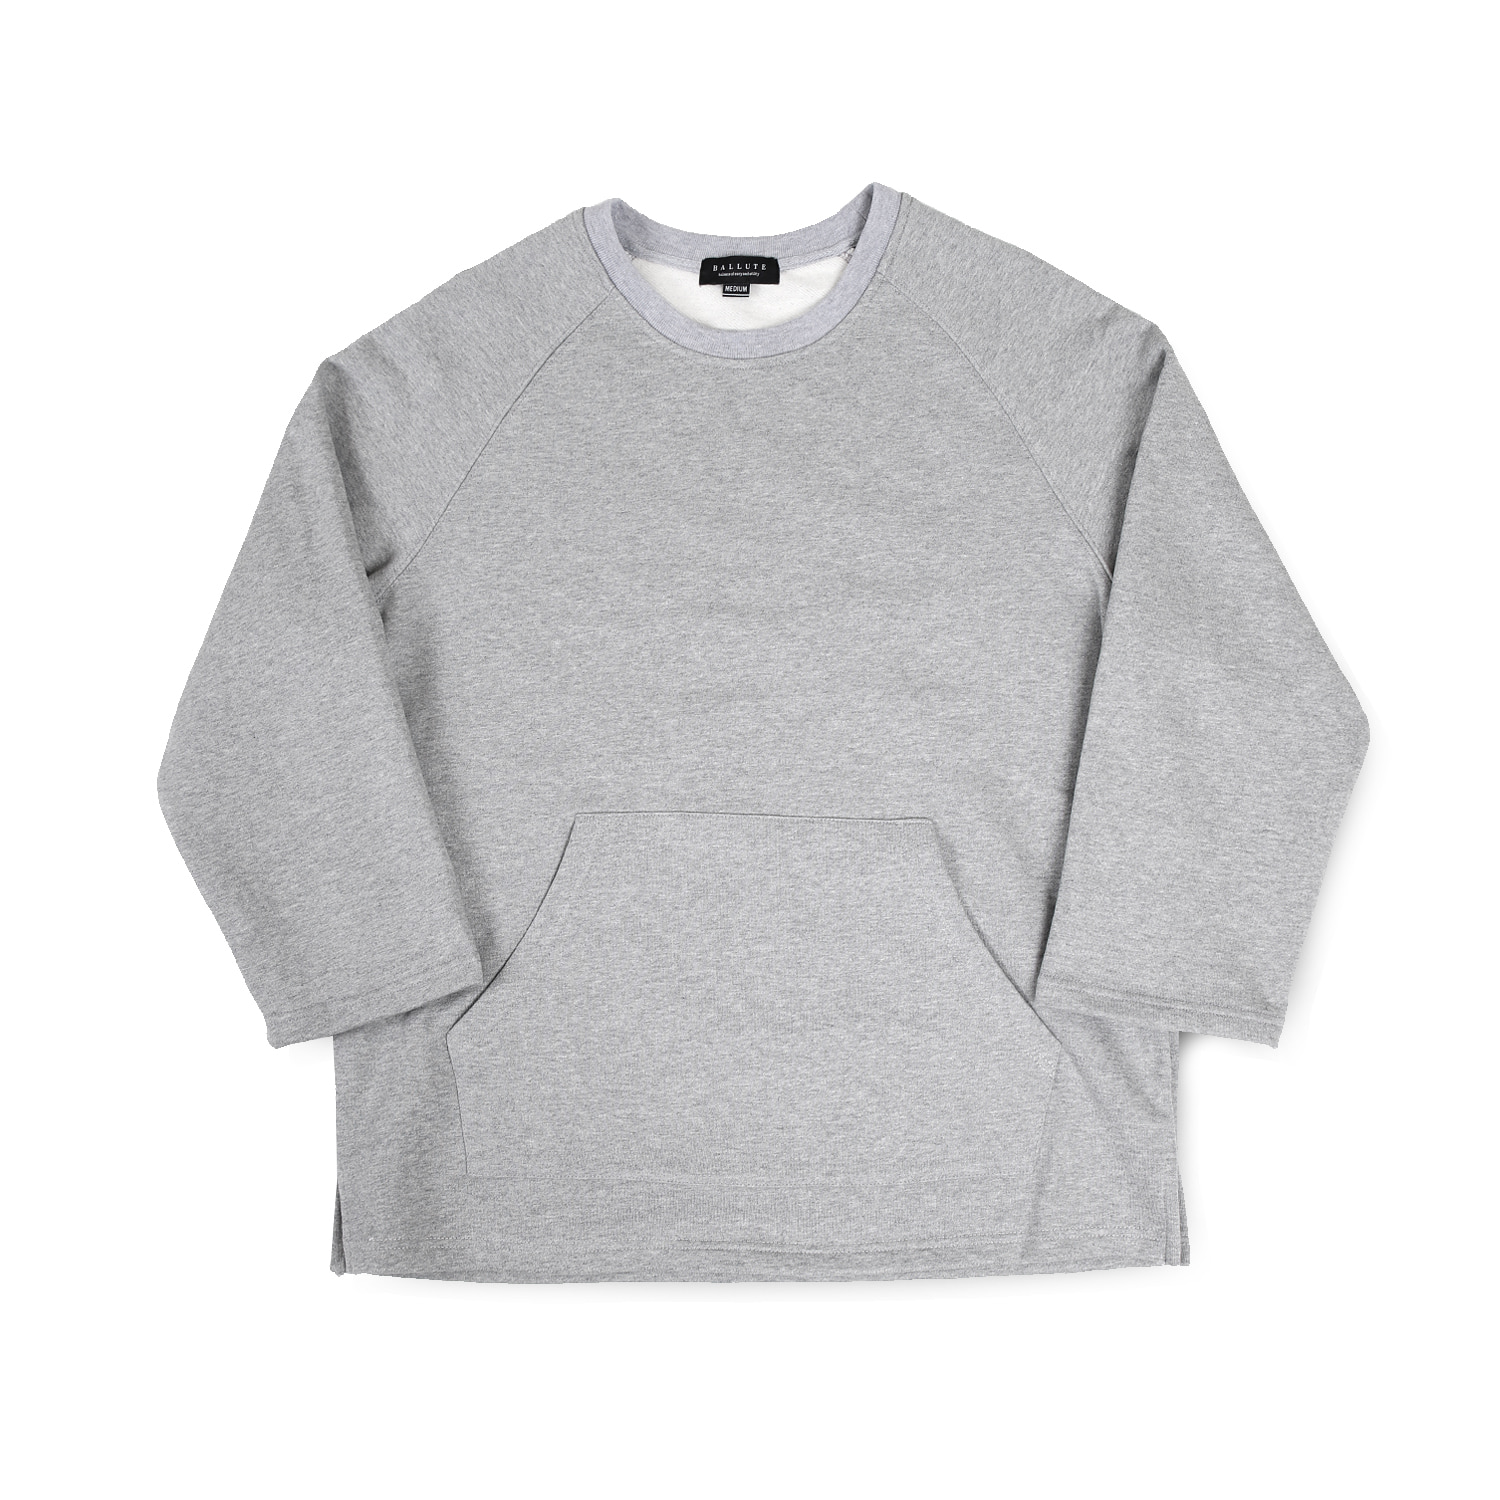 EASY SLEEVE SWEATSHIRT (GREY)